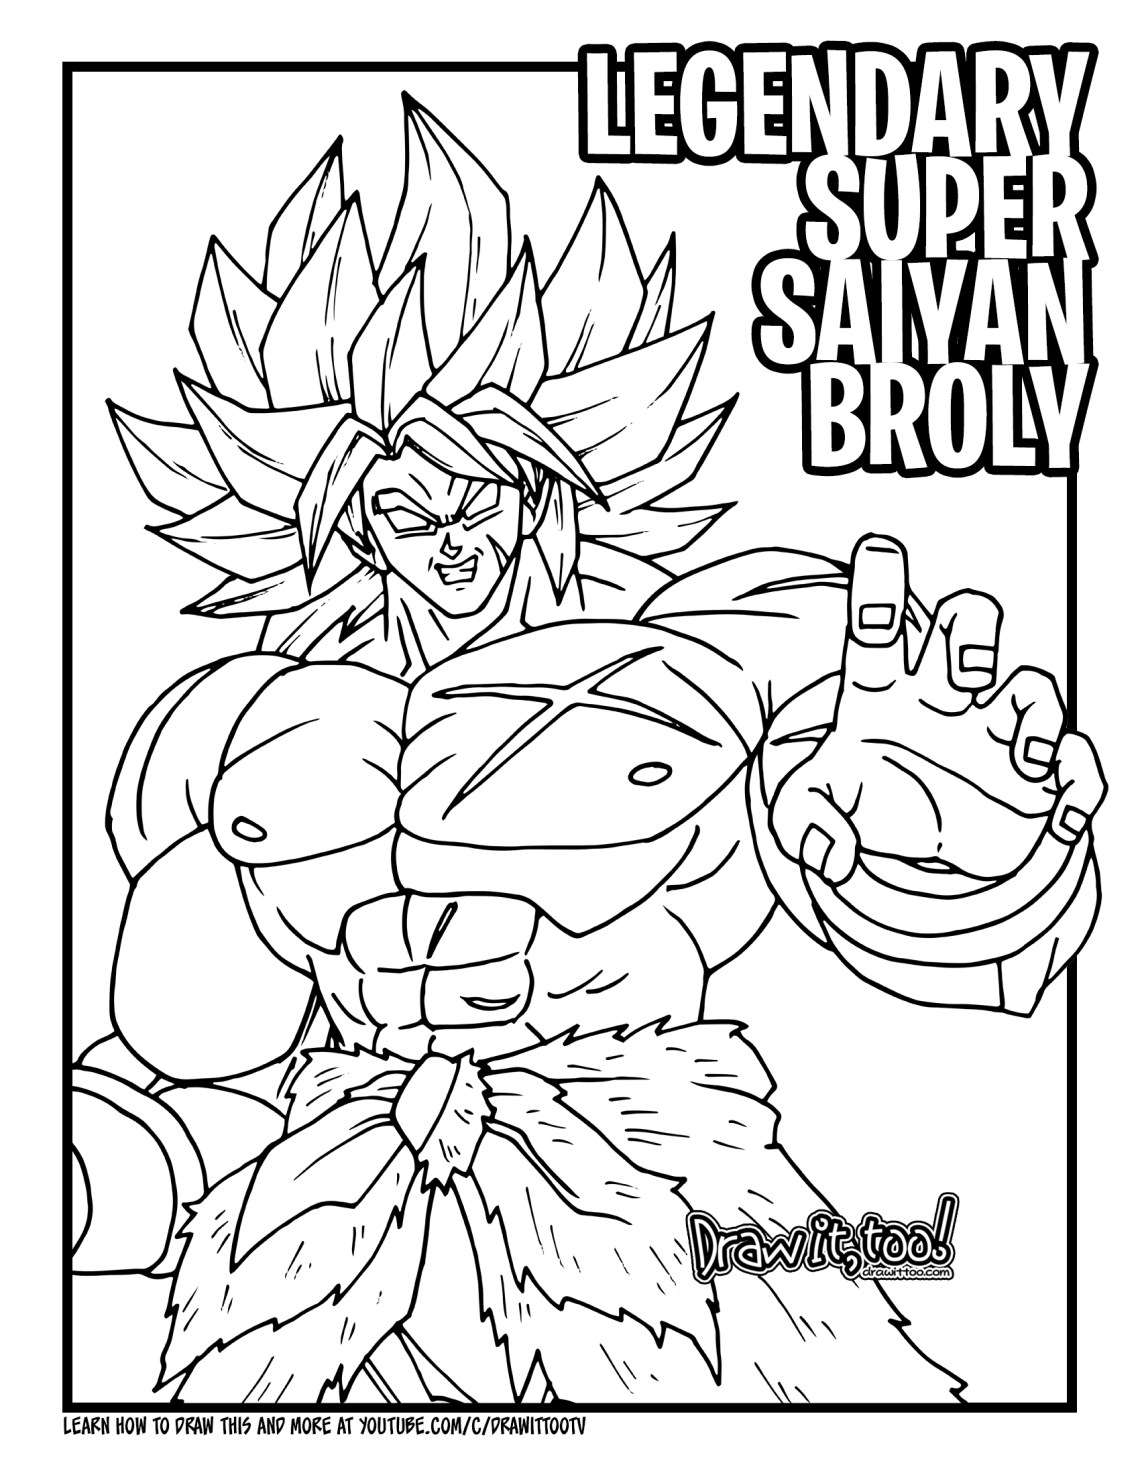 Dragon ball z broly coloring pages ~ How to Draw LEGENDARY SUPER SAIYAN BROLY (Dragon Ball ...